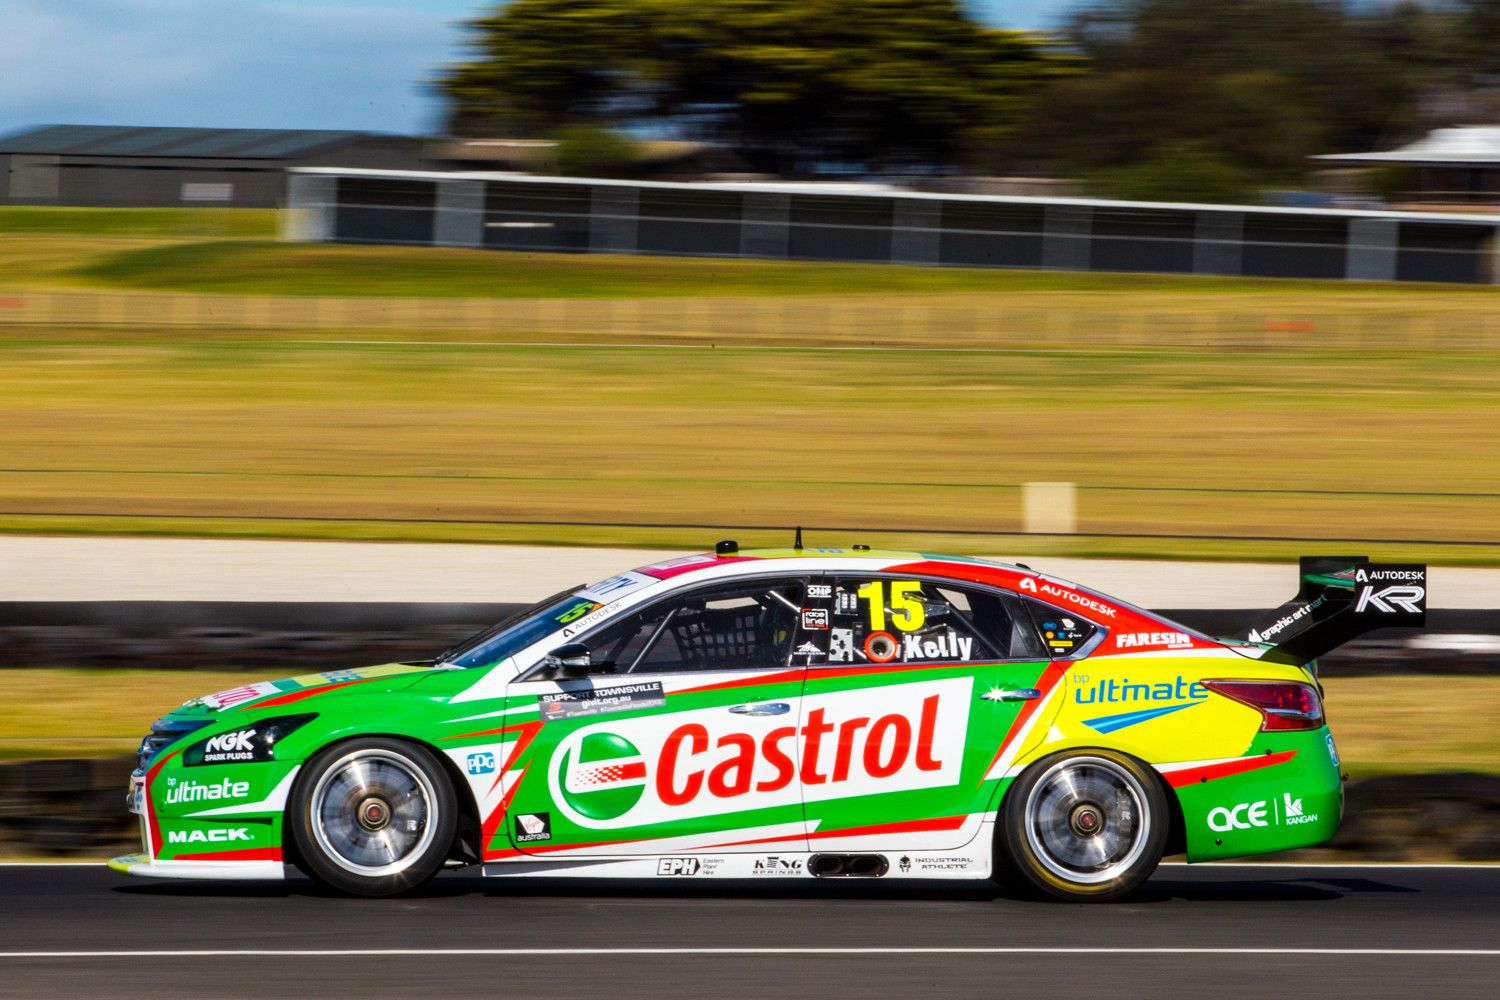 Pin By Alan Braswell On Nascar And Racing Super Cars Australian V8 Supercars V8 Supercars